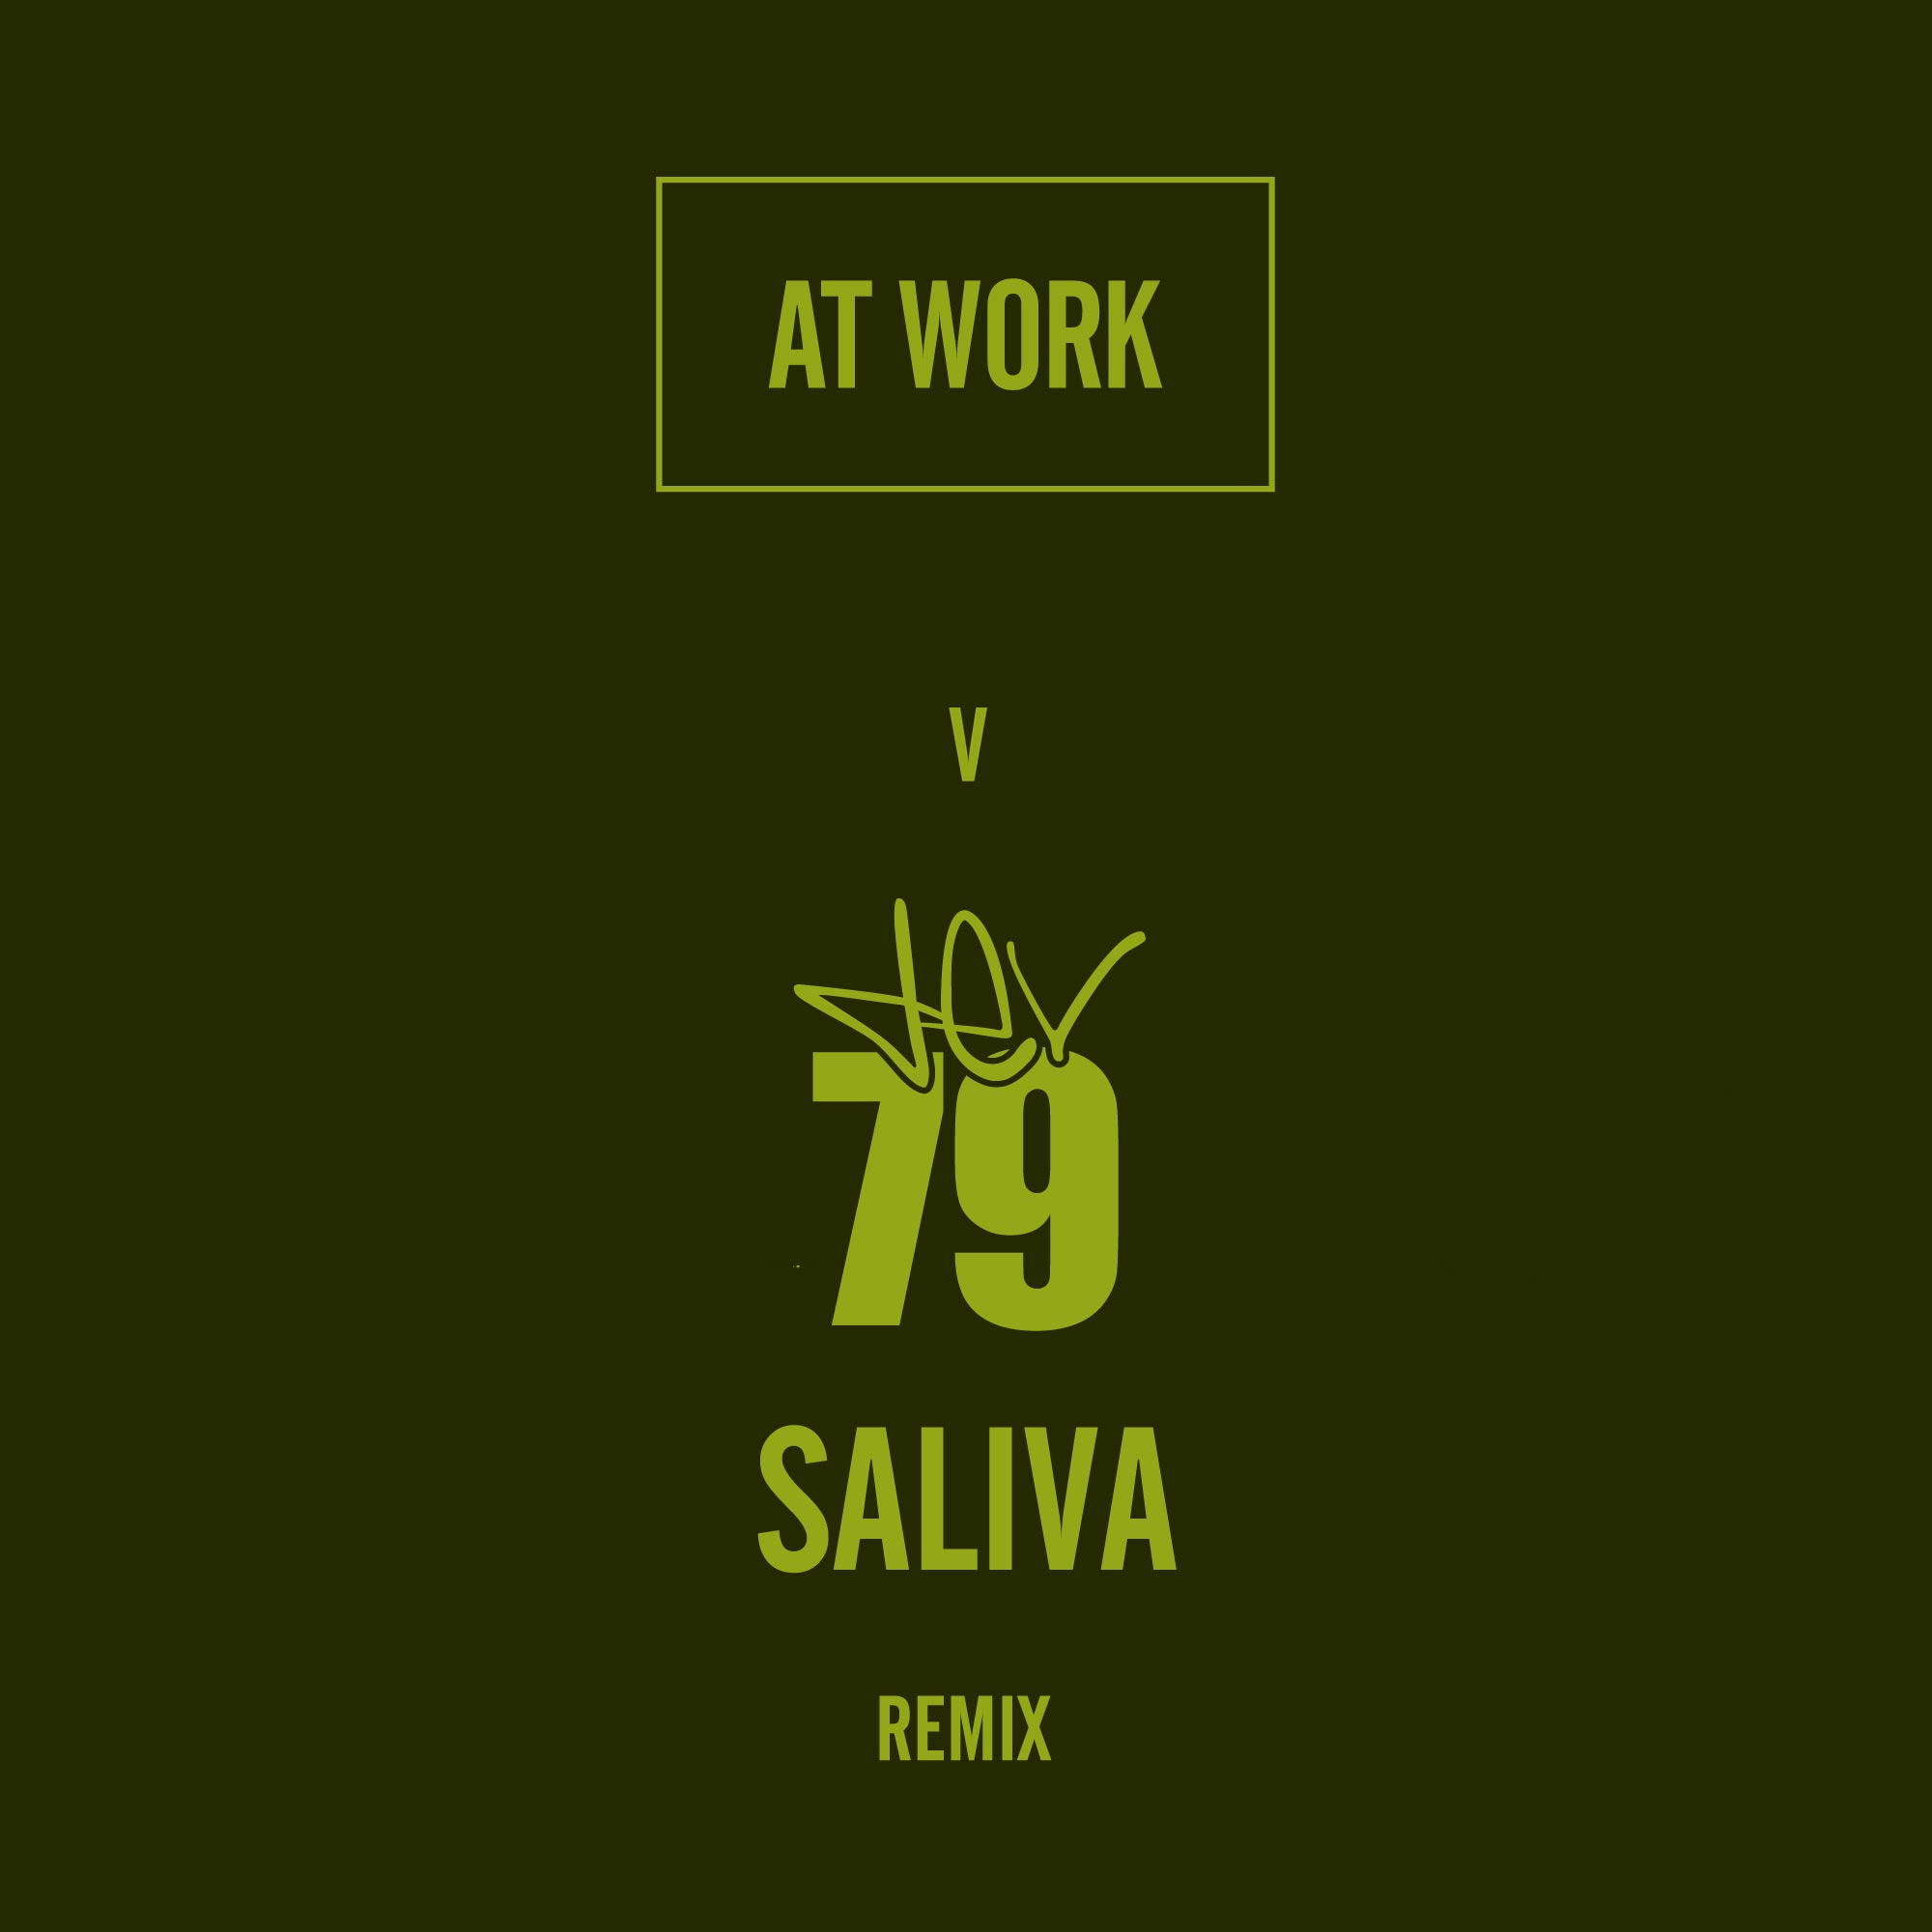 Dev79 V At Work – Saliva - The At Work Remixes